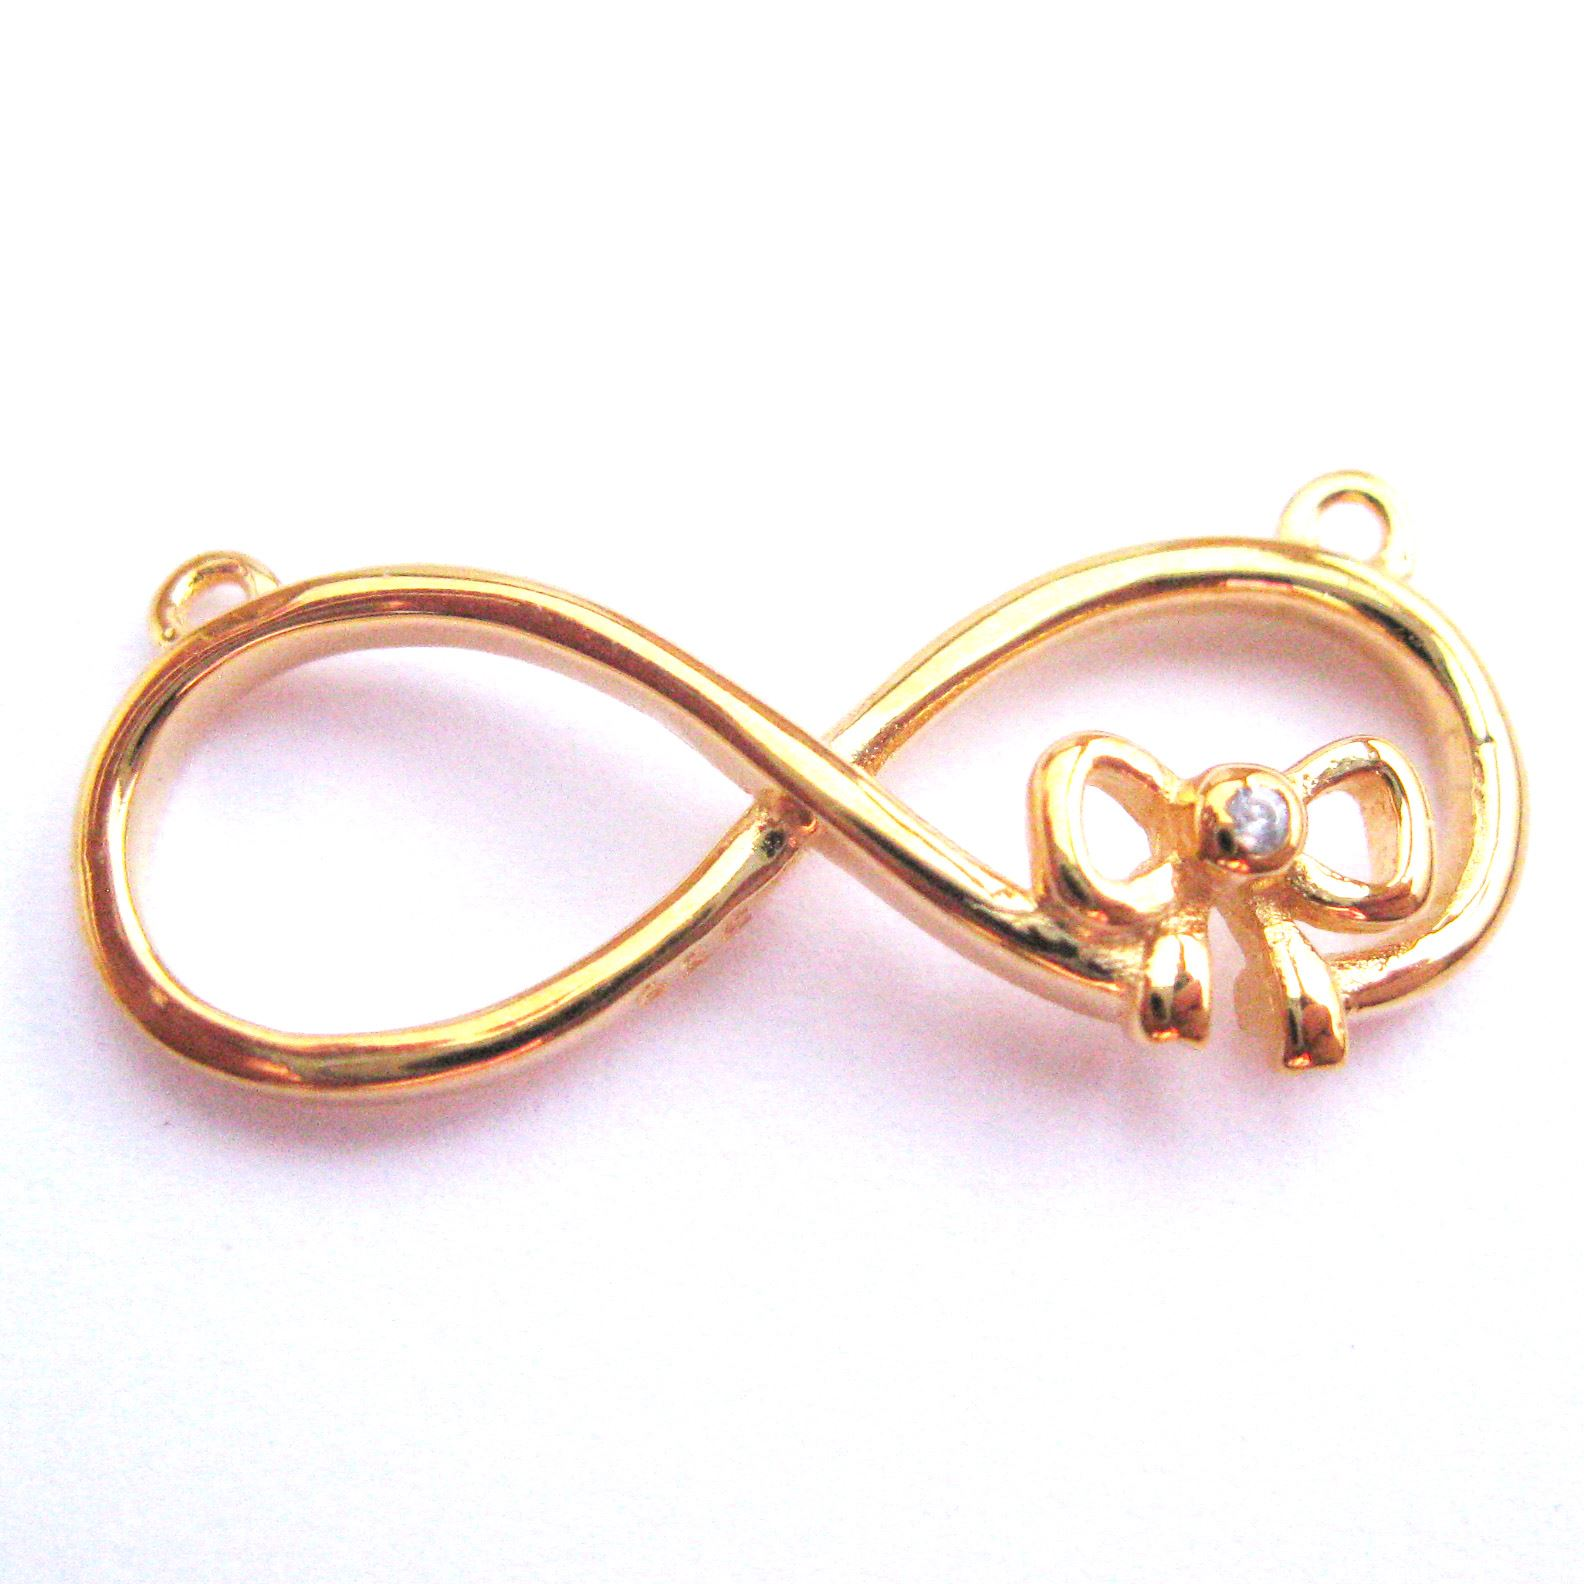 22K Gold plated Sterling Silver Charms, Large Infinity Connecor with CZ Cubic Zirconia Bow Pendant ( sold per 1 piece)